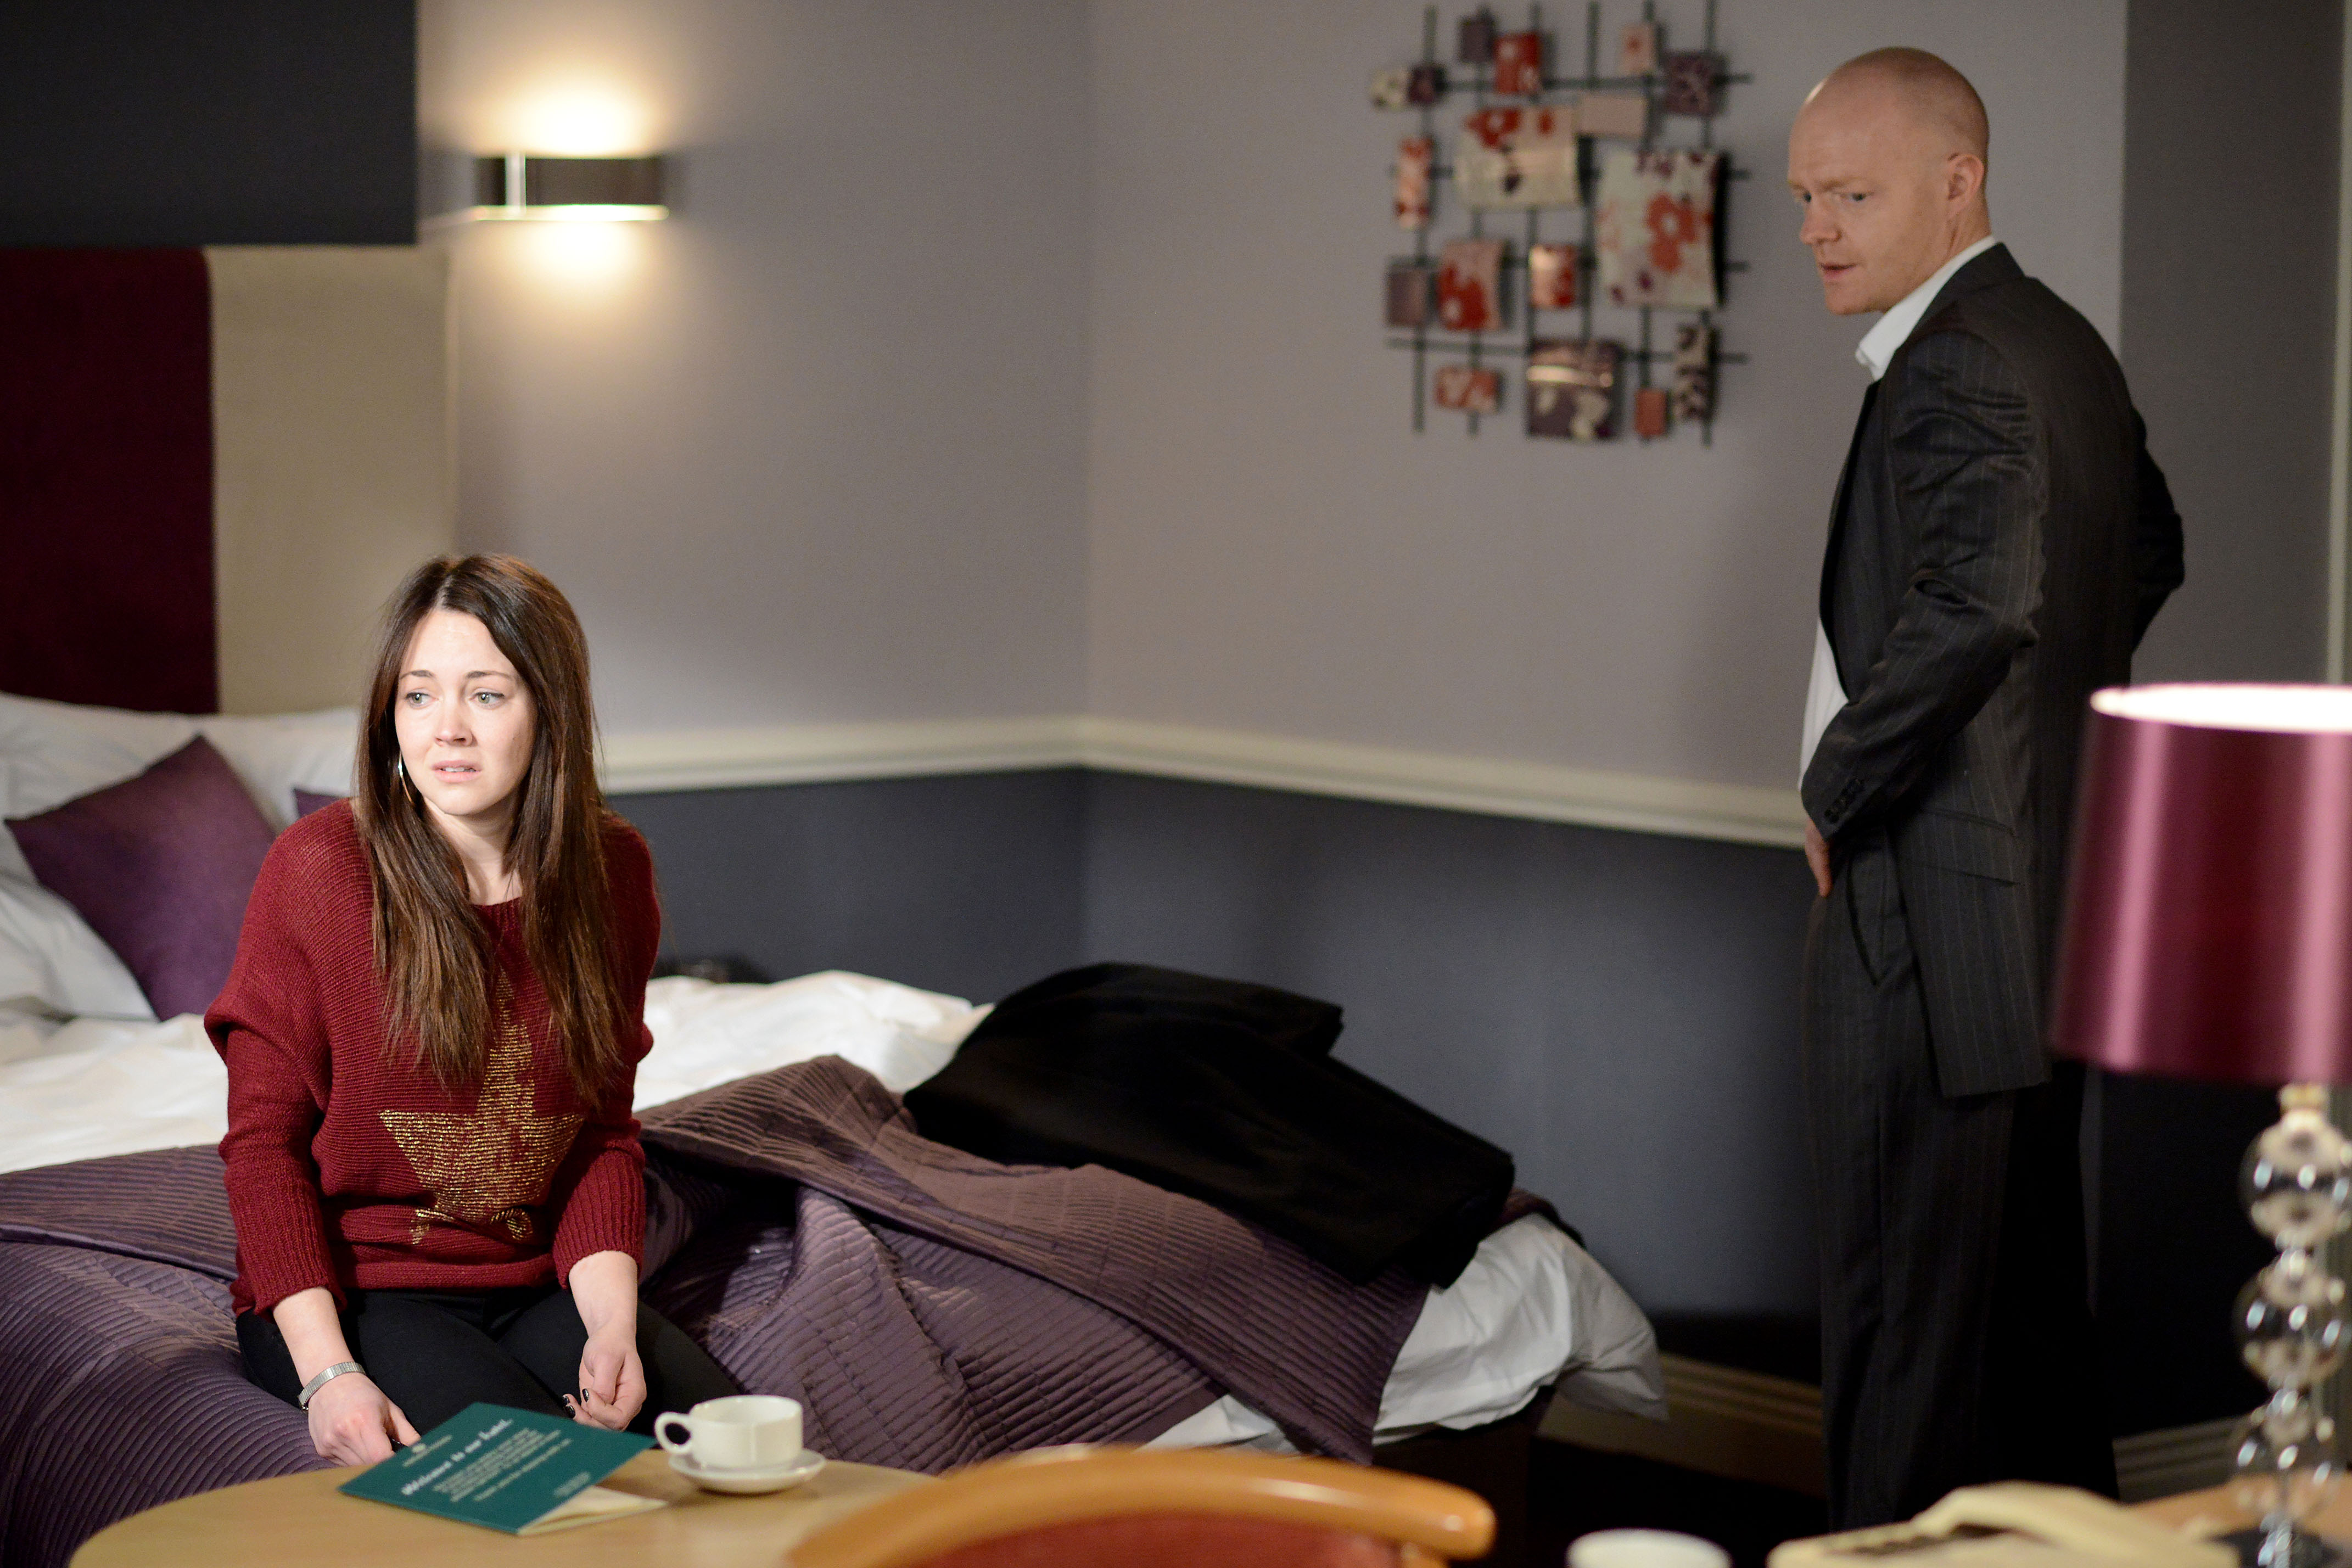 EastEnders spoiler: Stacey and Max rekindle feelings with passionate kiss